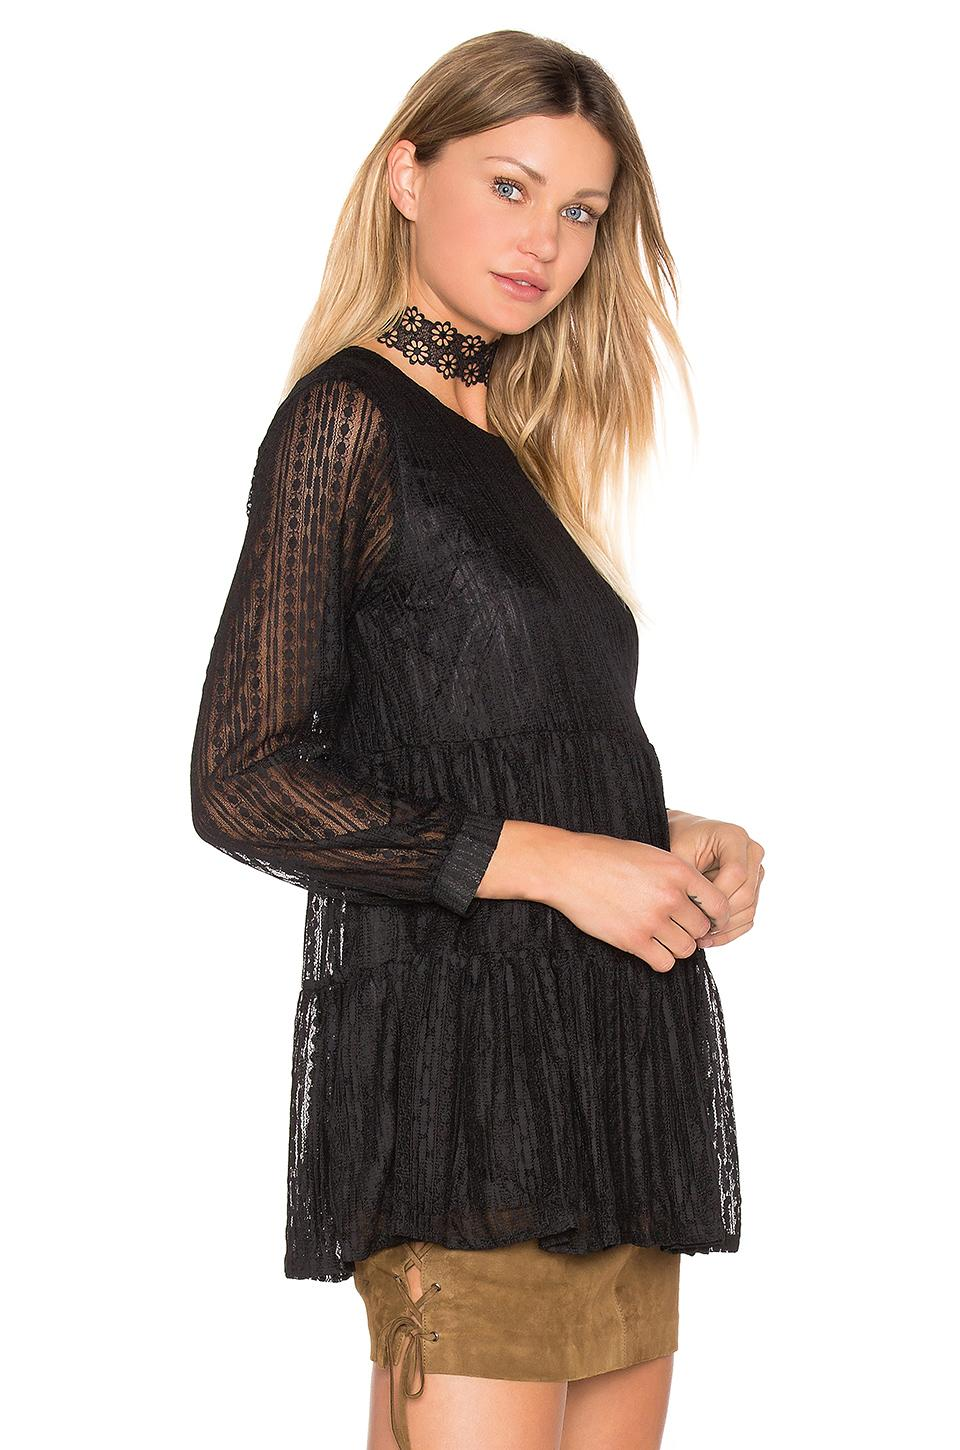 Shipping Discount Authentic Clearance Big Sale More Amore Lace Tunic in Black Raga Clearance Original Real Cheap Price Reliable Cheap Online EhL5Na96M